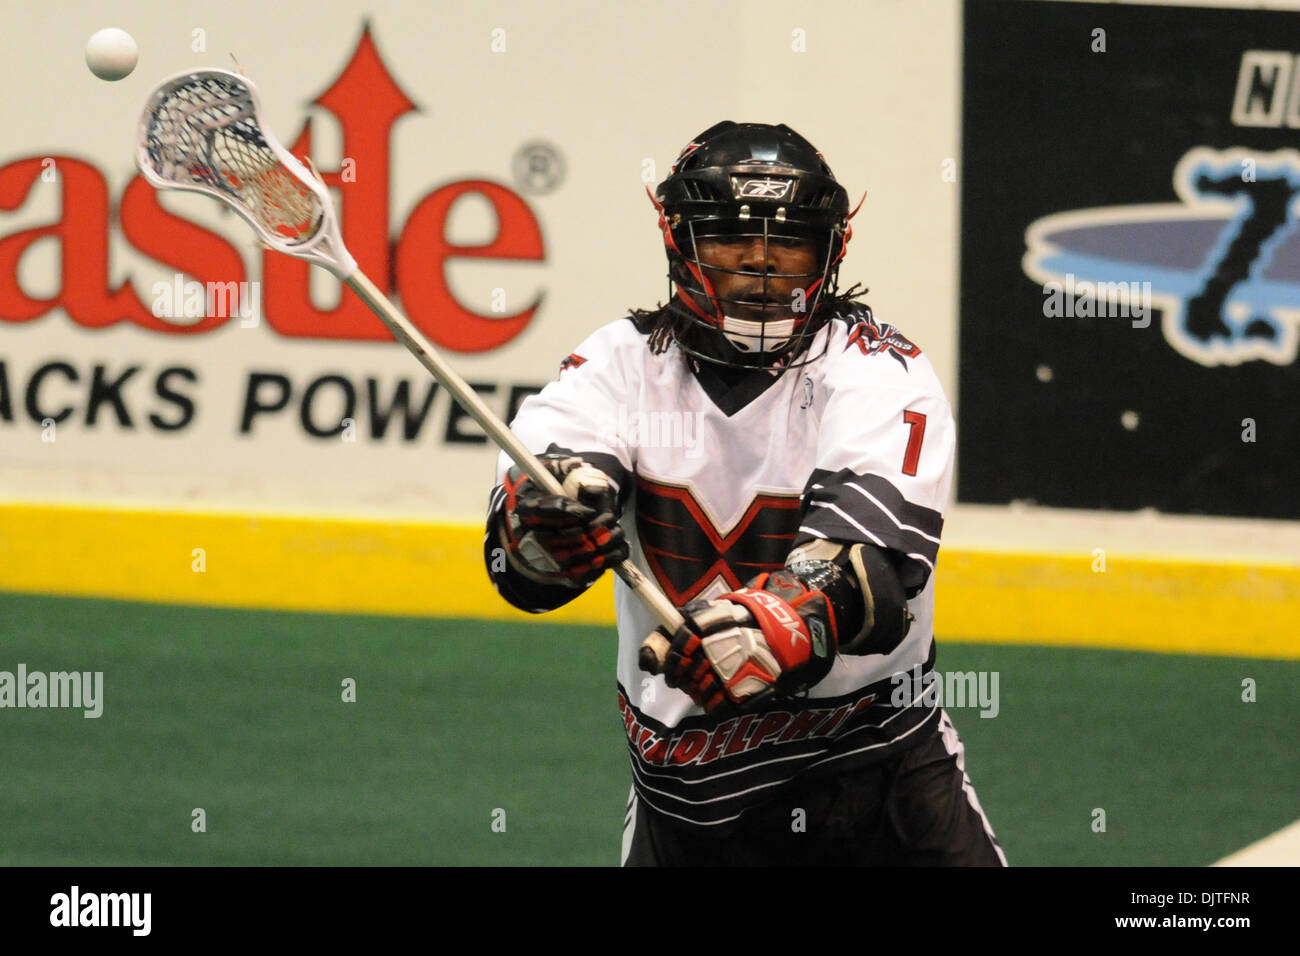 John Christmas Lacrosse.Philadelphia Wings Forward John Christmas 1 Makes A Pass